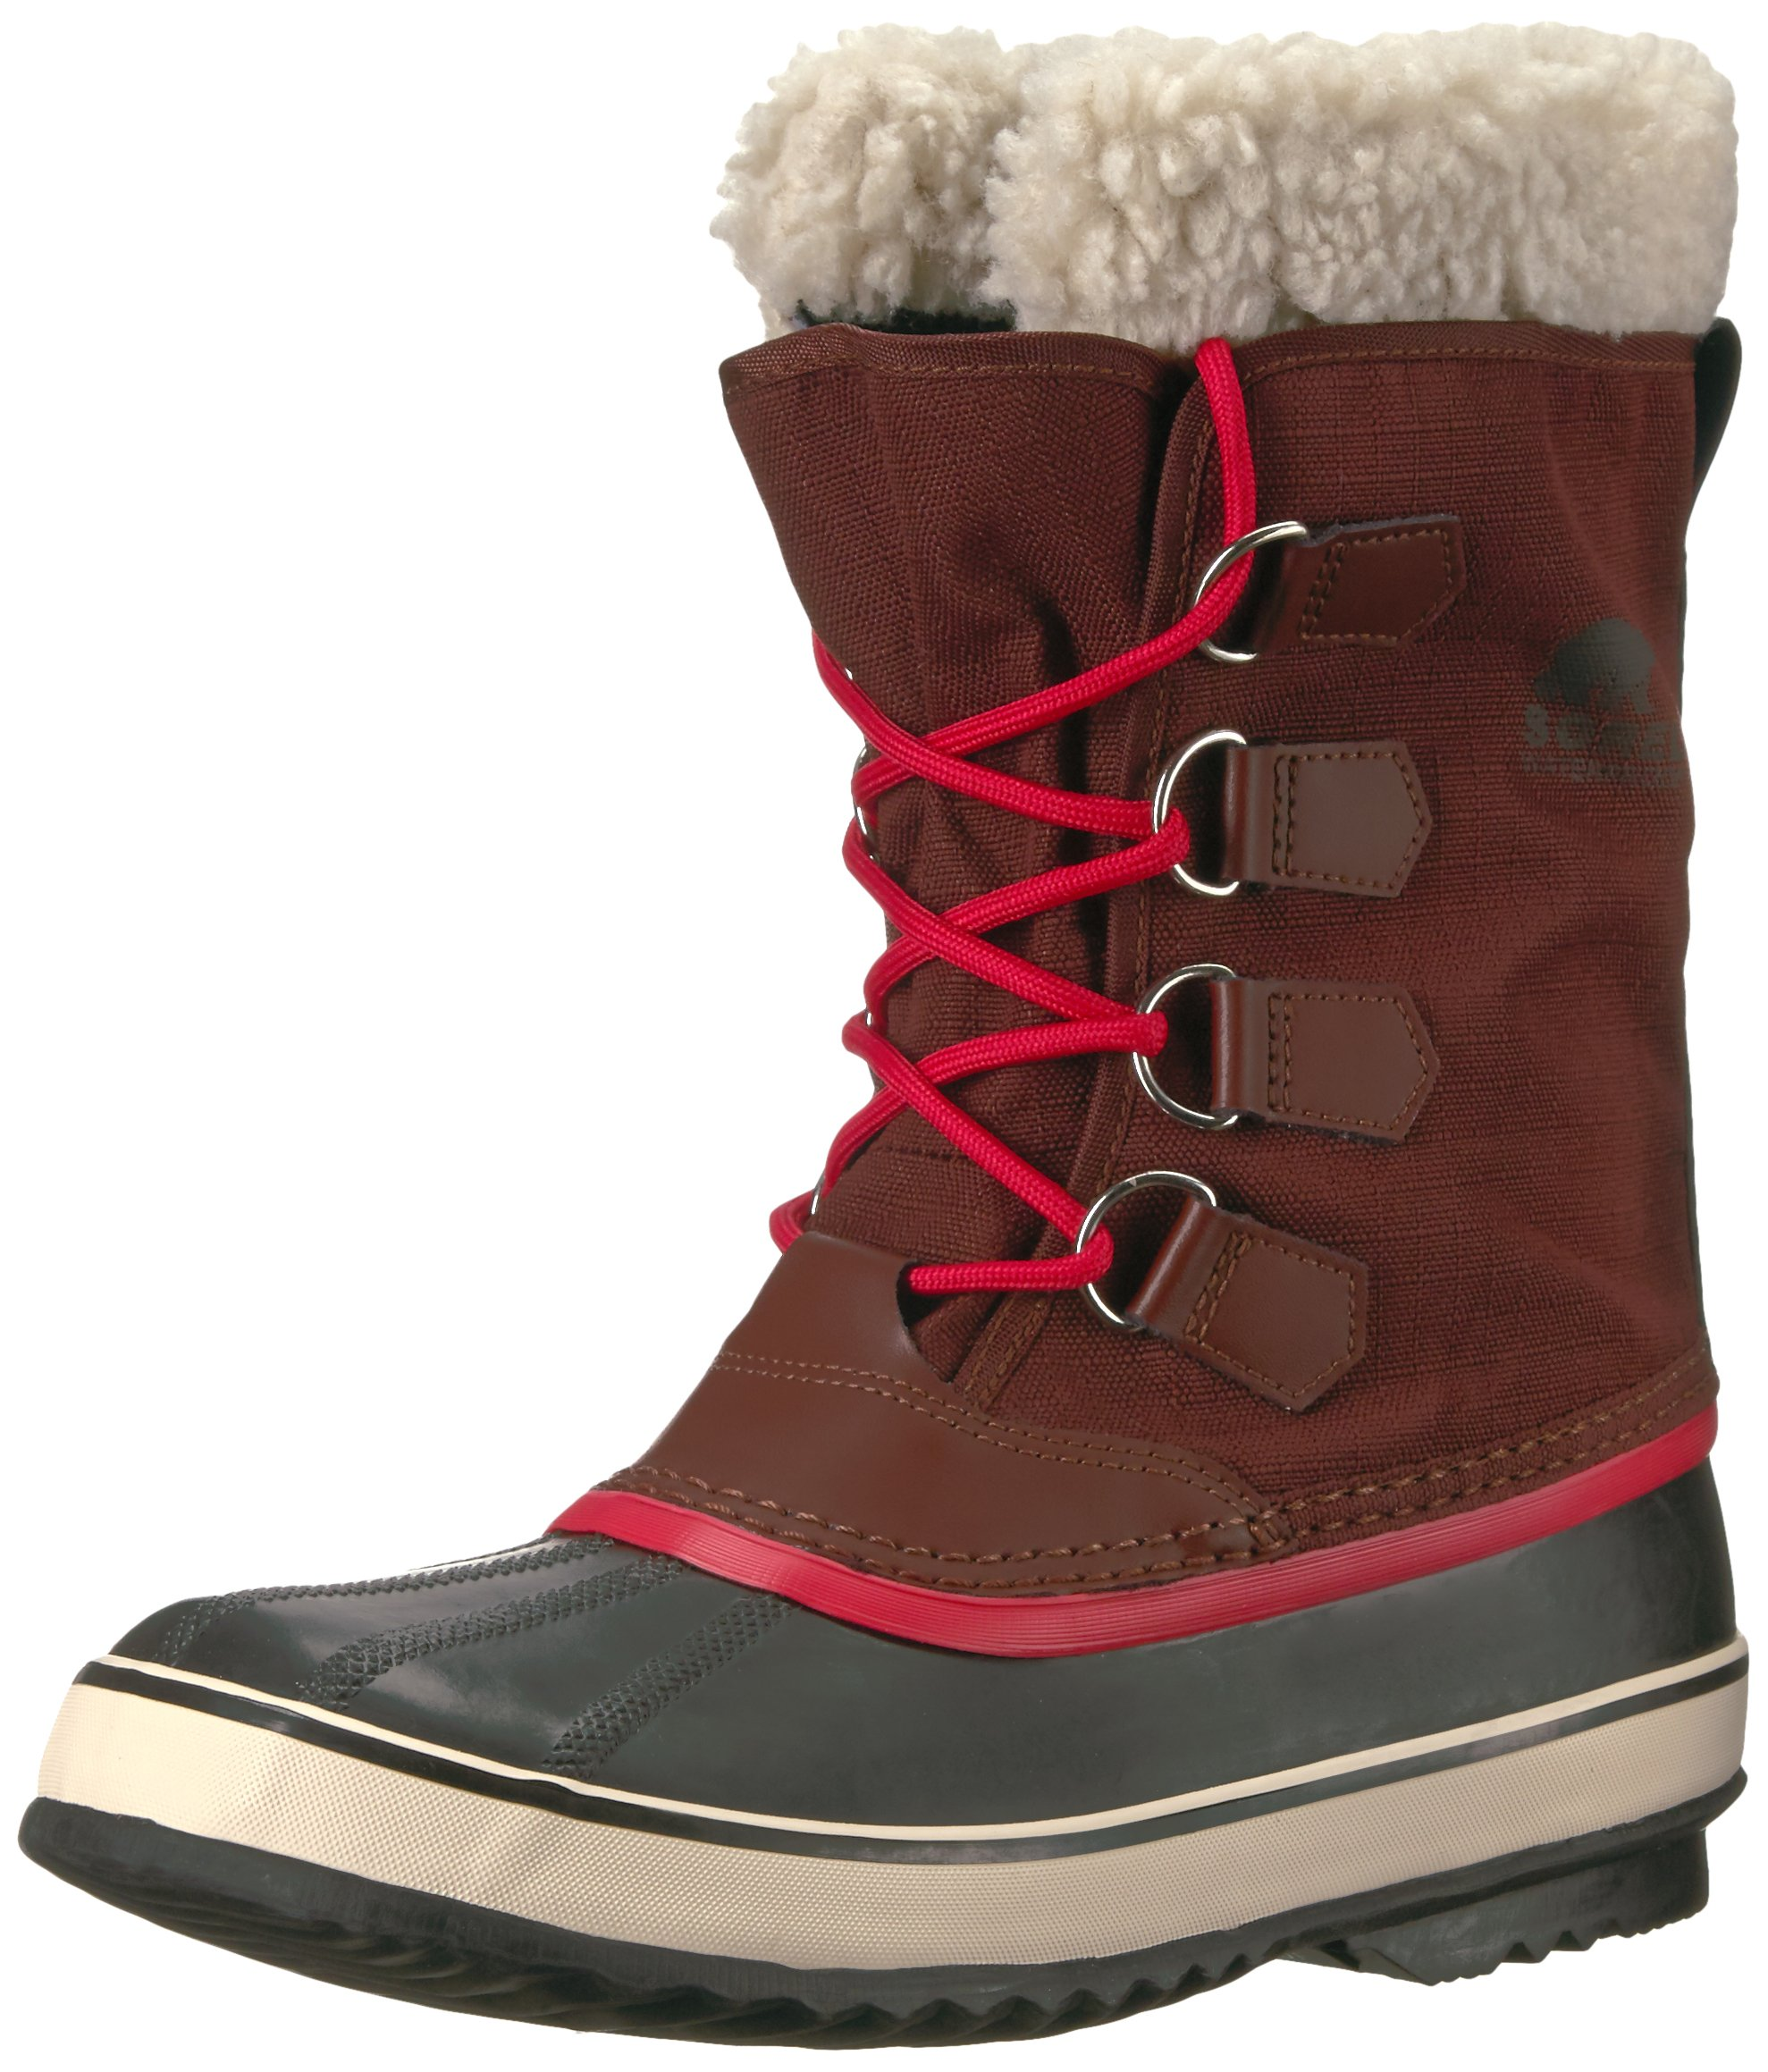 Sorel Women's Winter Carnival Snow Boot, Redwood, Candy Apple, 8 B US